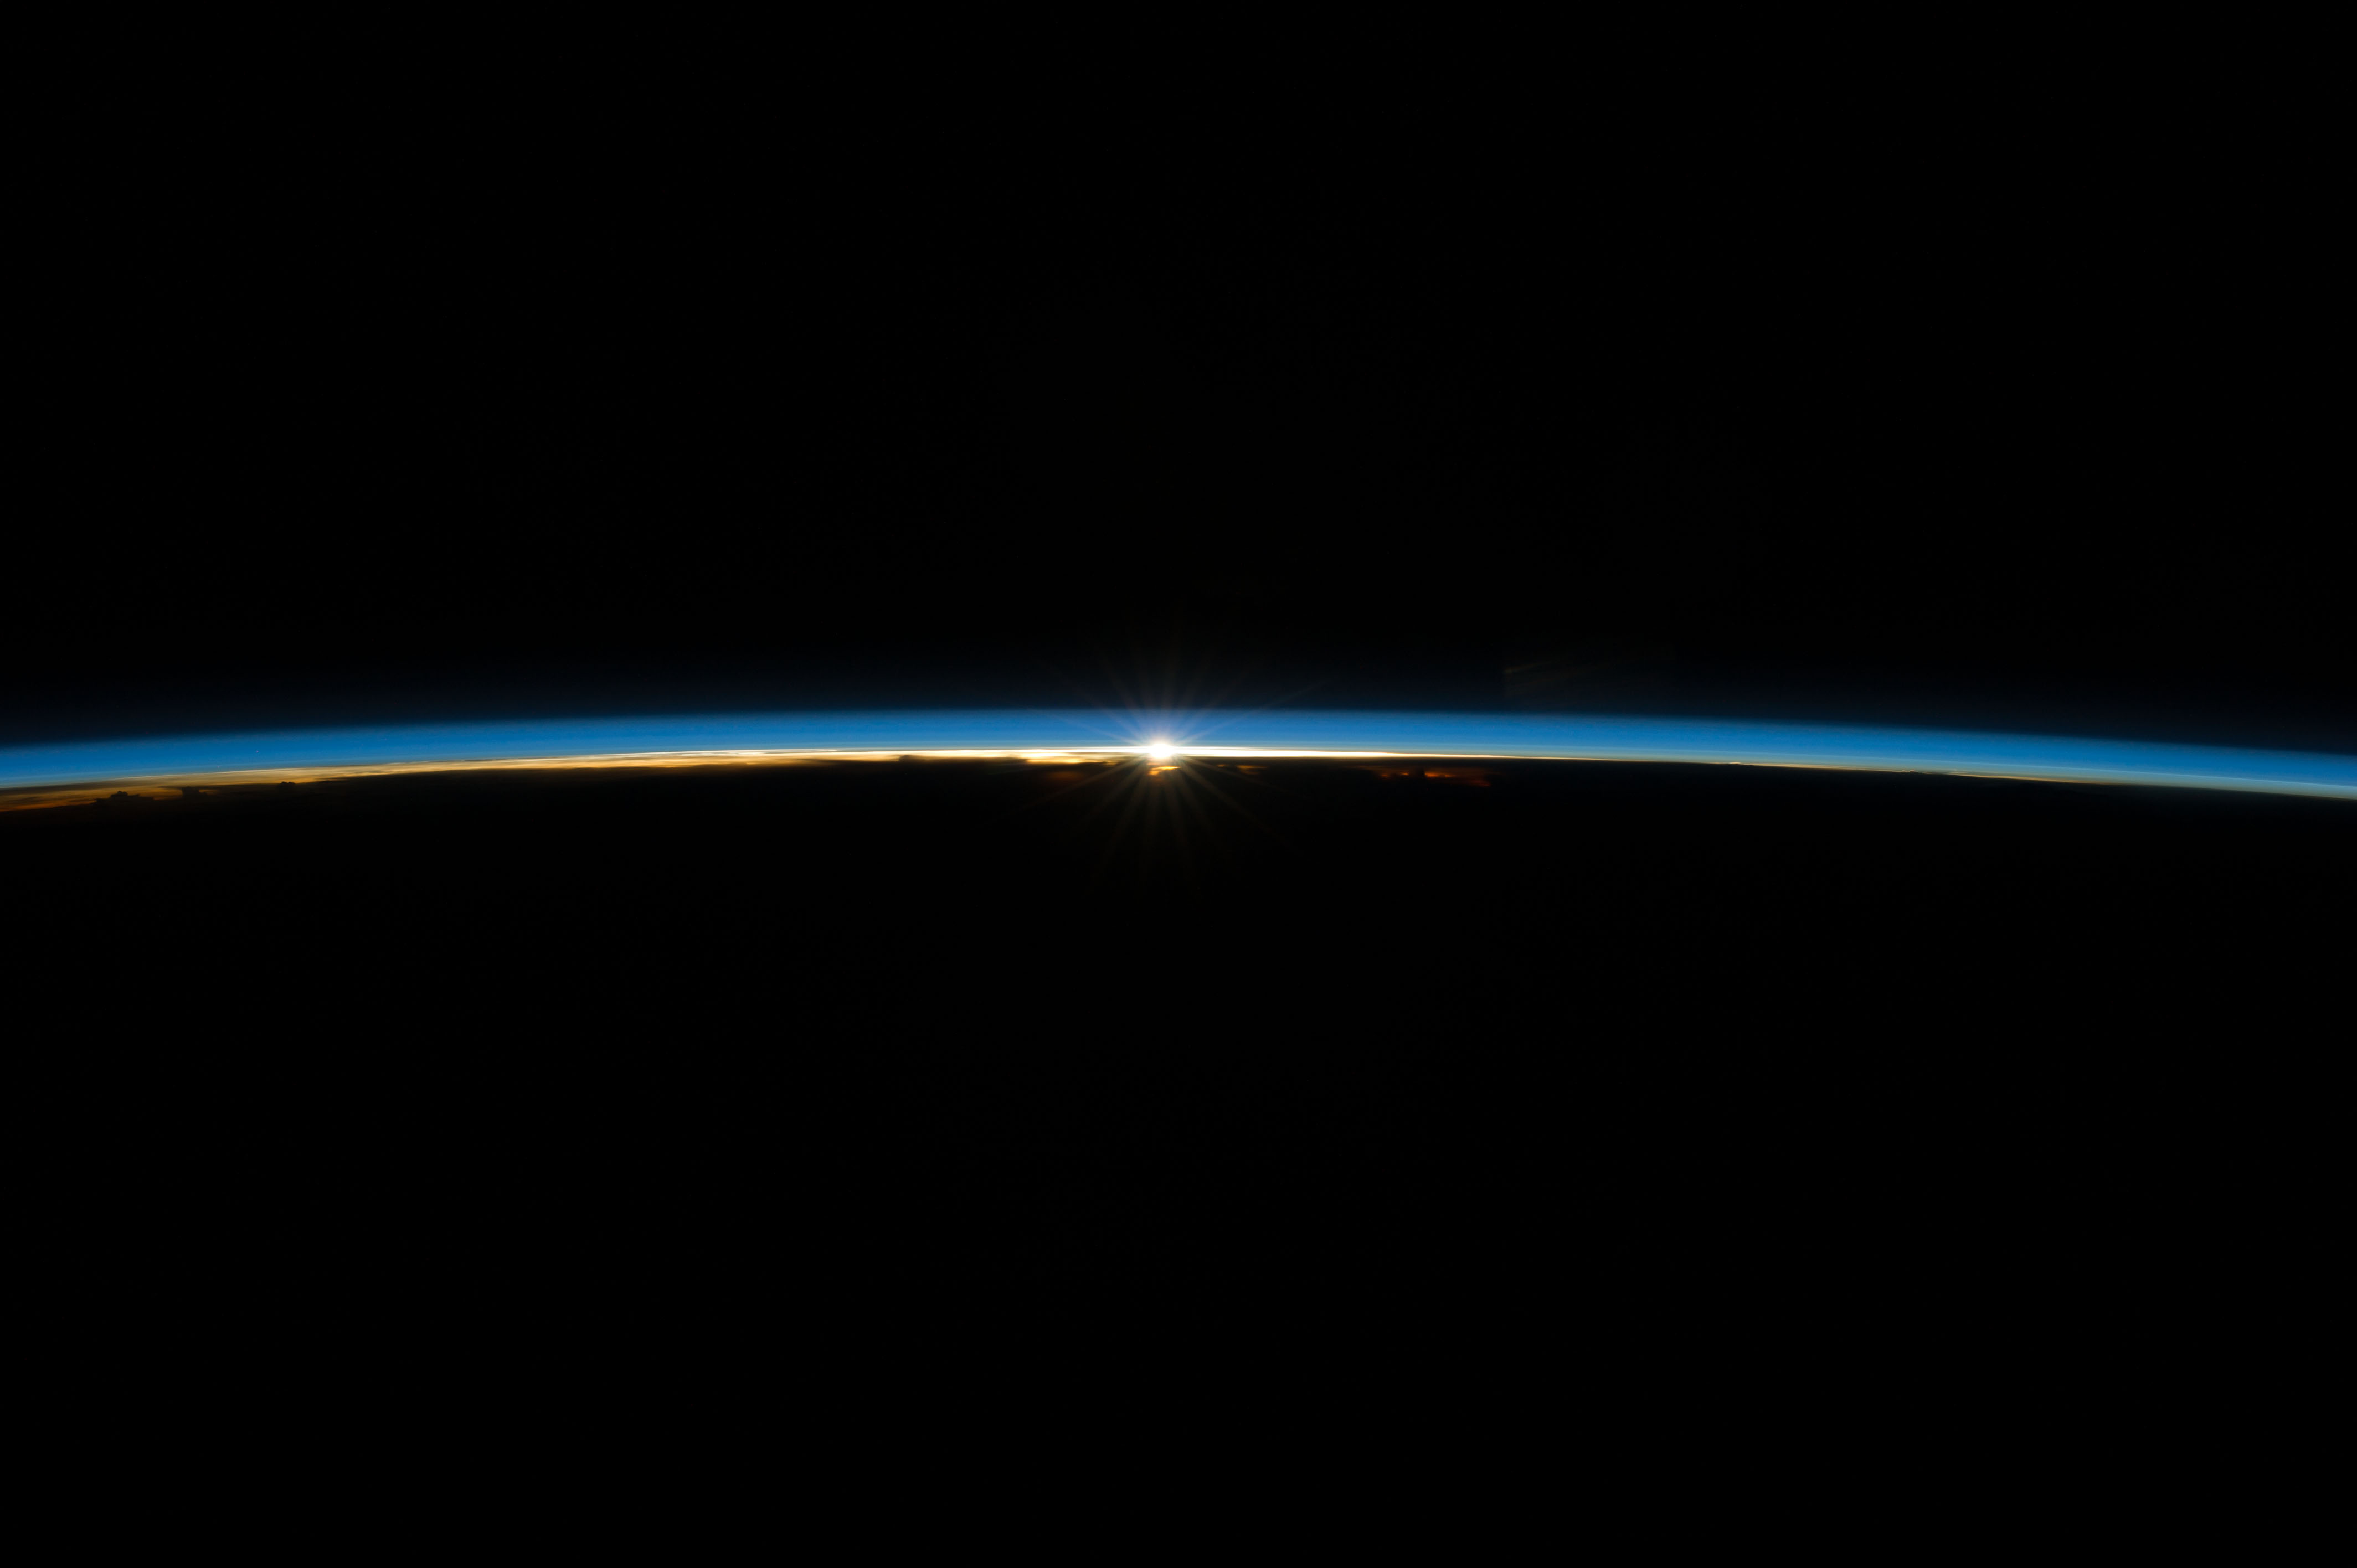 ISS 040e008179 earth's atmosphere l.jpg